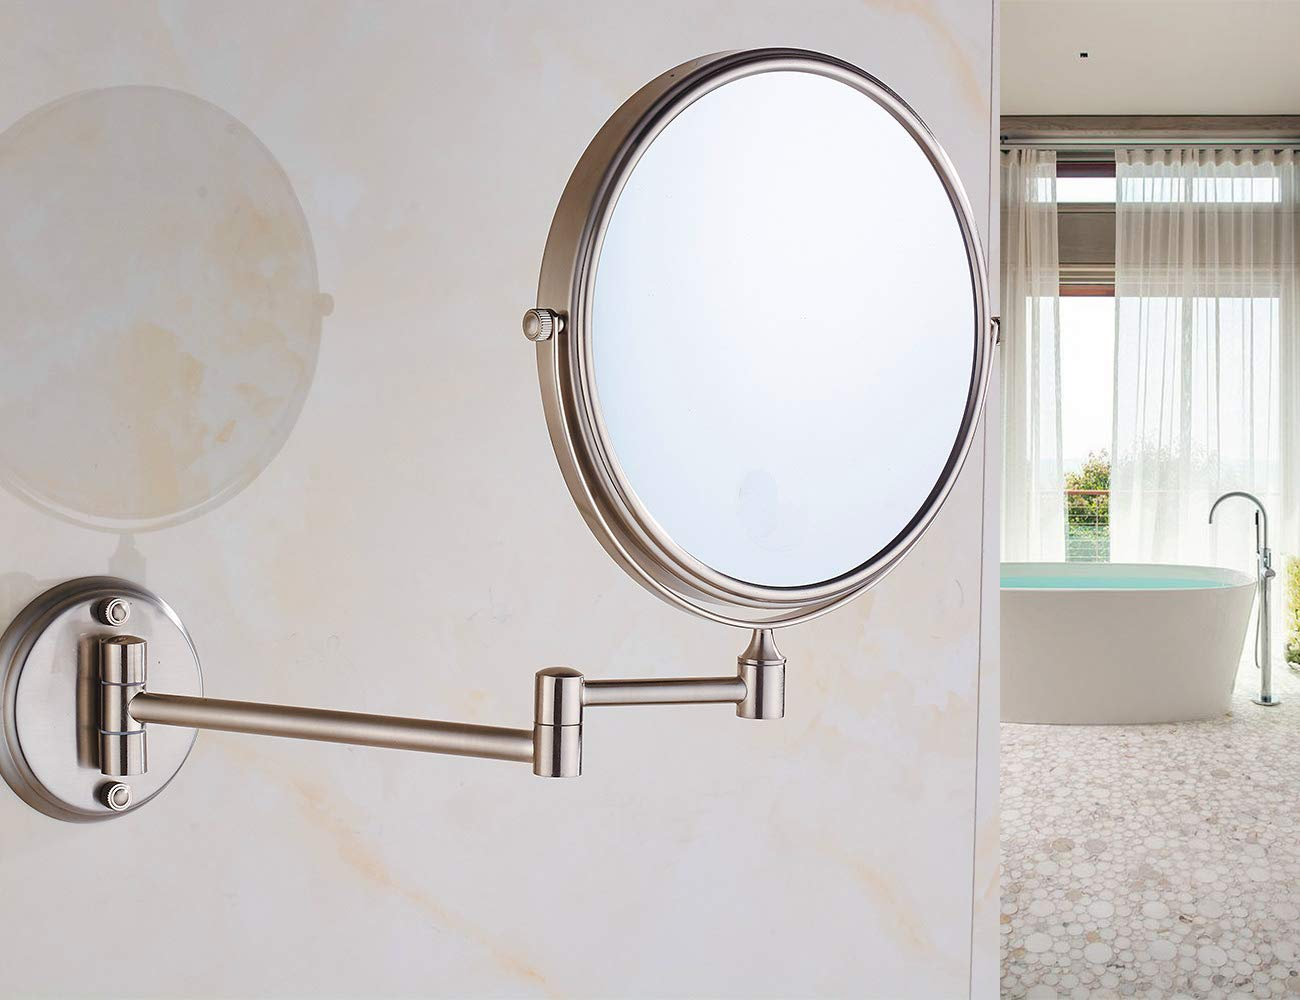 8in,10x 8in Cavoli 8 Inch Two-Sided Swivel Wall Mounted Makeup Mirror with 10x Magnification,Glass /& Metal,4 1//2 Circle Base Nickel Finish 4 1//2 Circle Base Nickel Finish